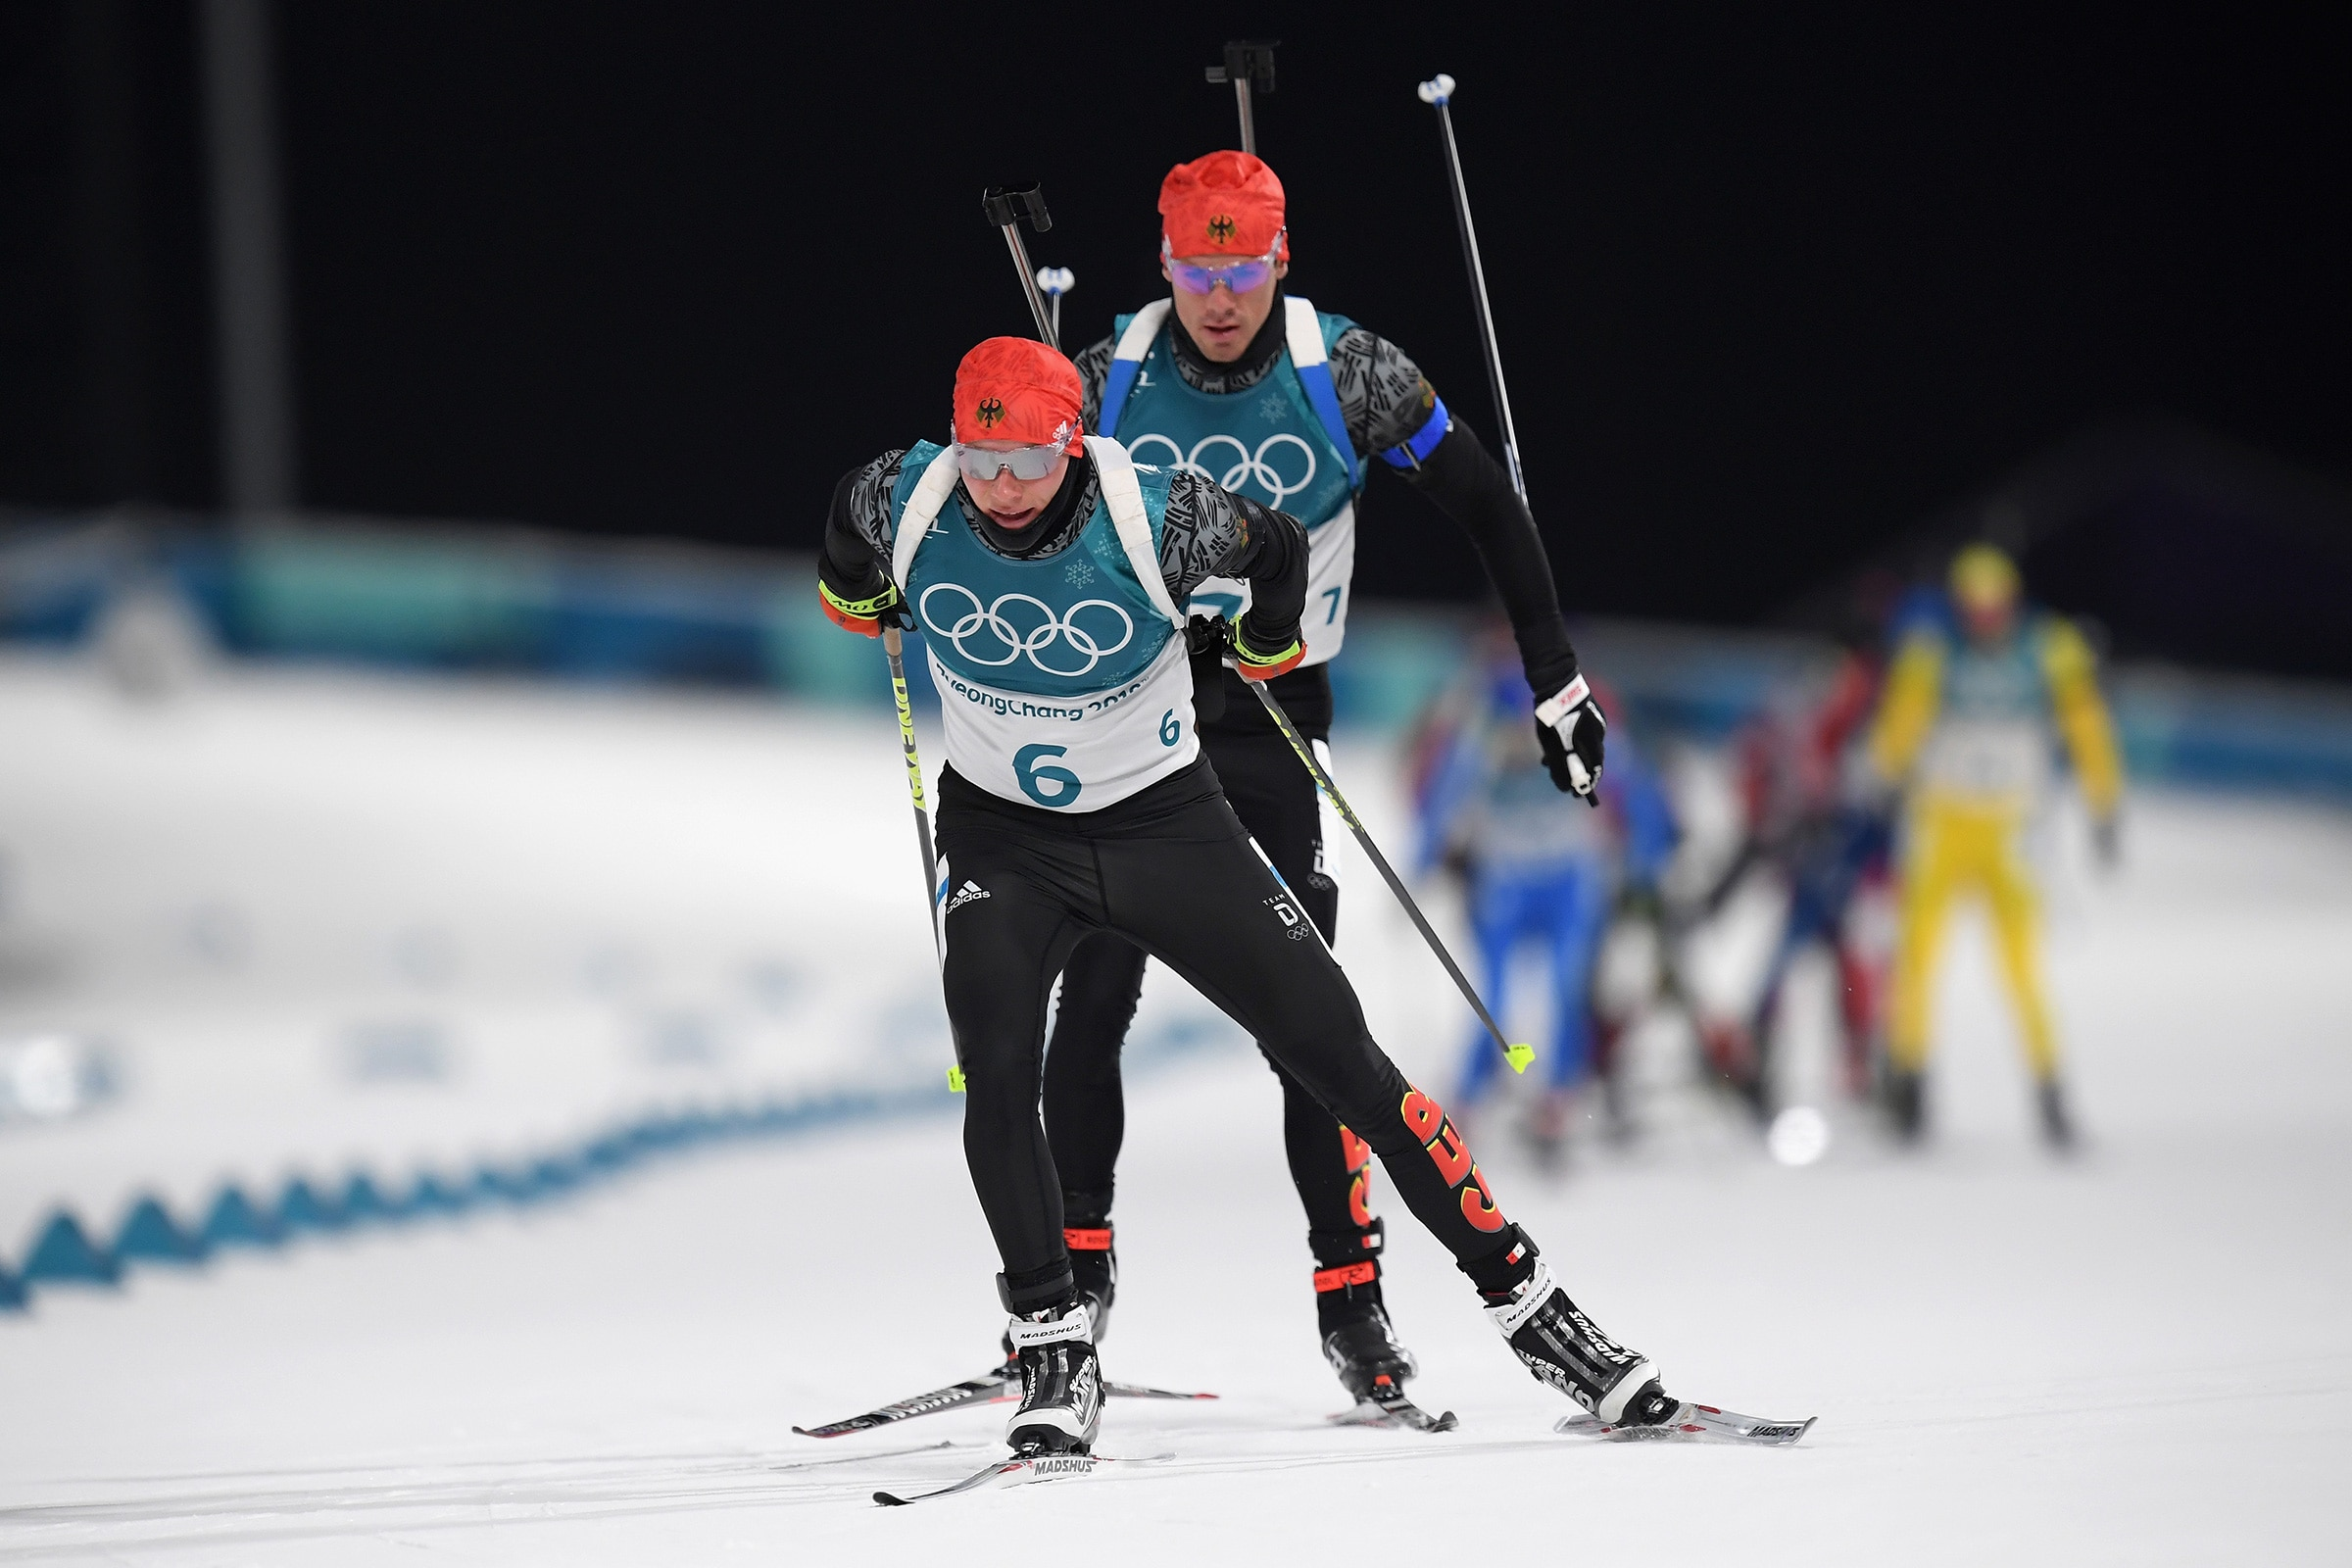 Biathlon - Men's 12.5km Pursuit